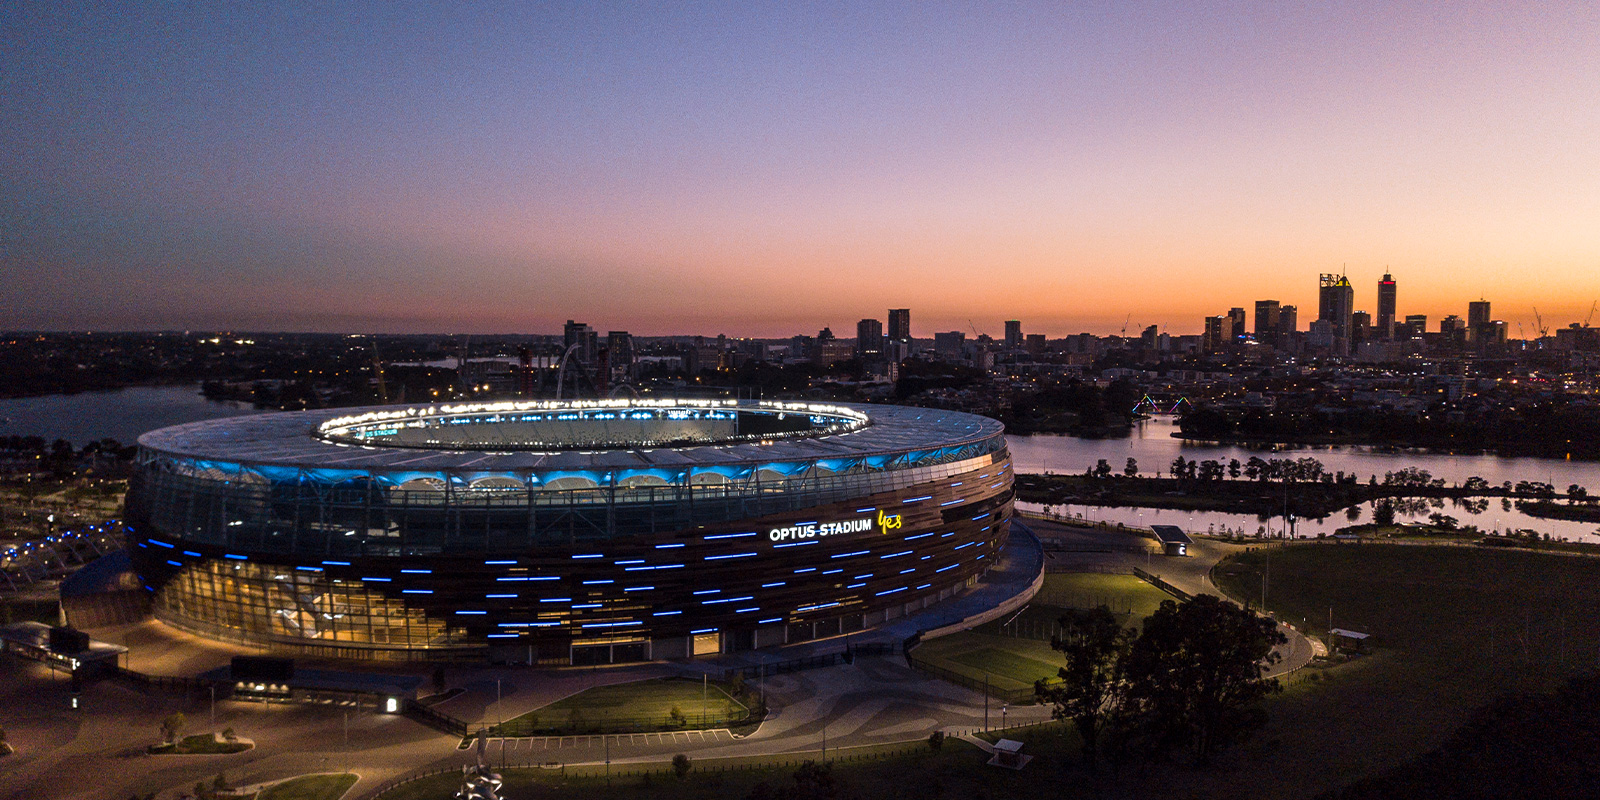 Optus Stadium Perth at Dusk